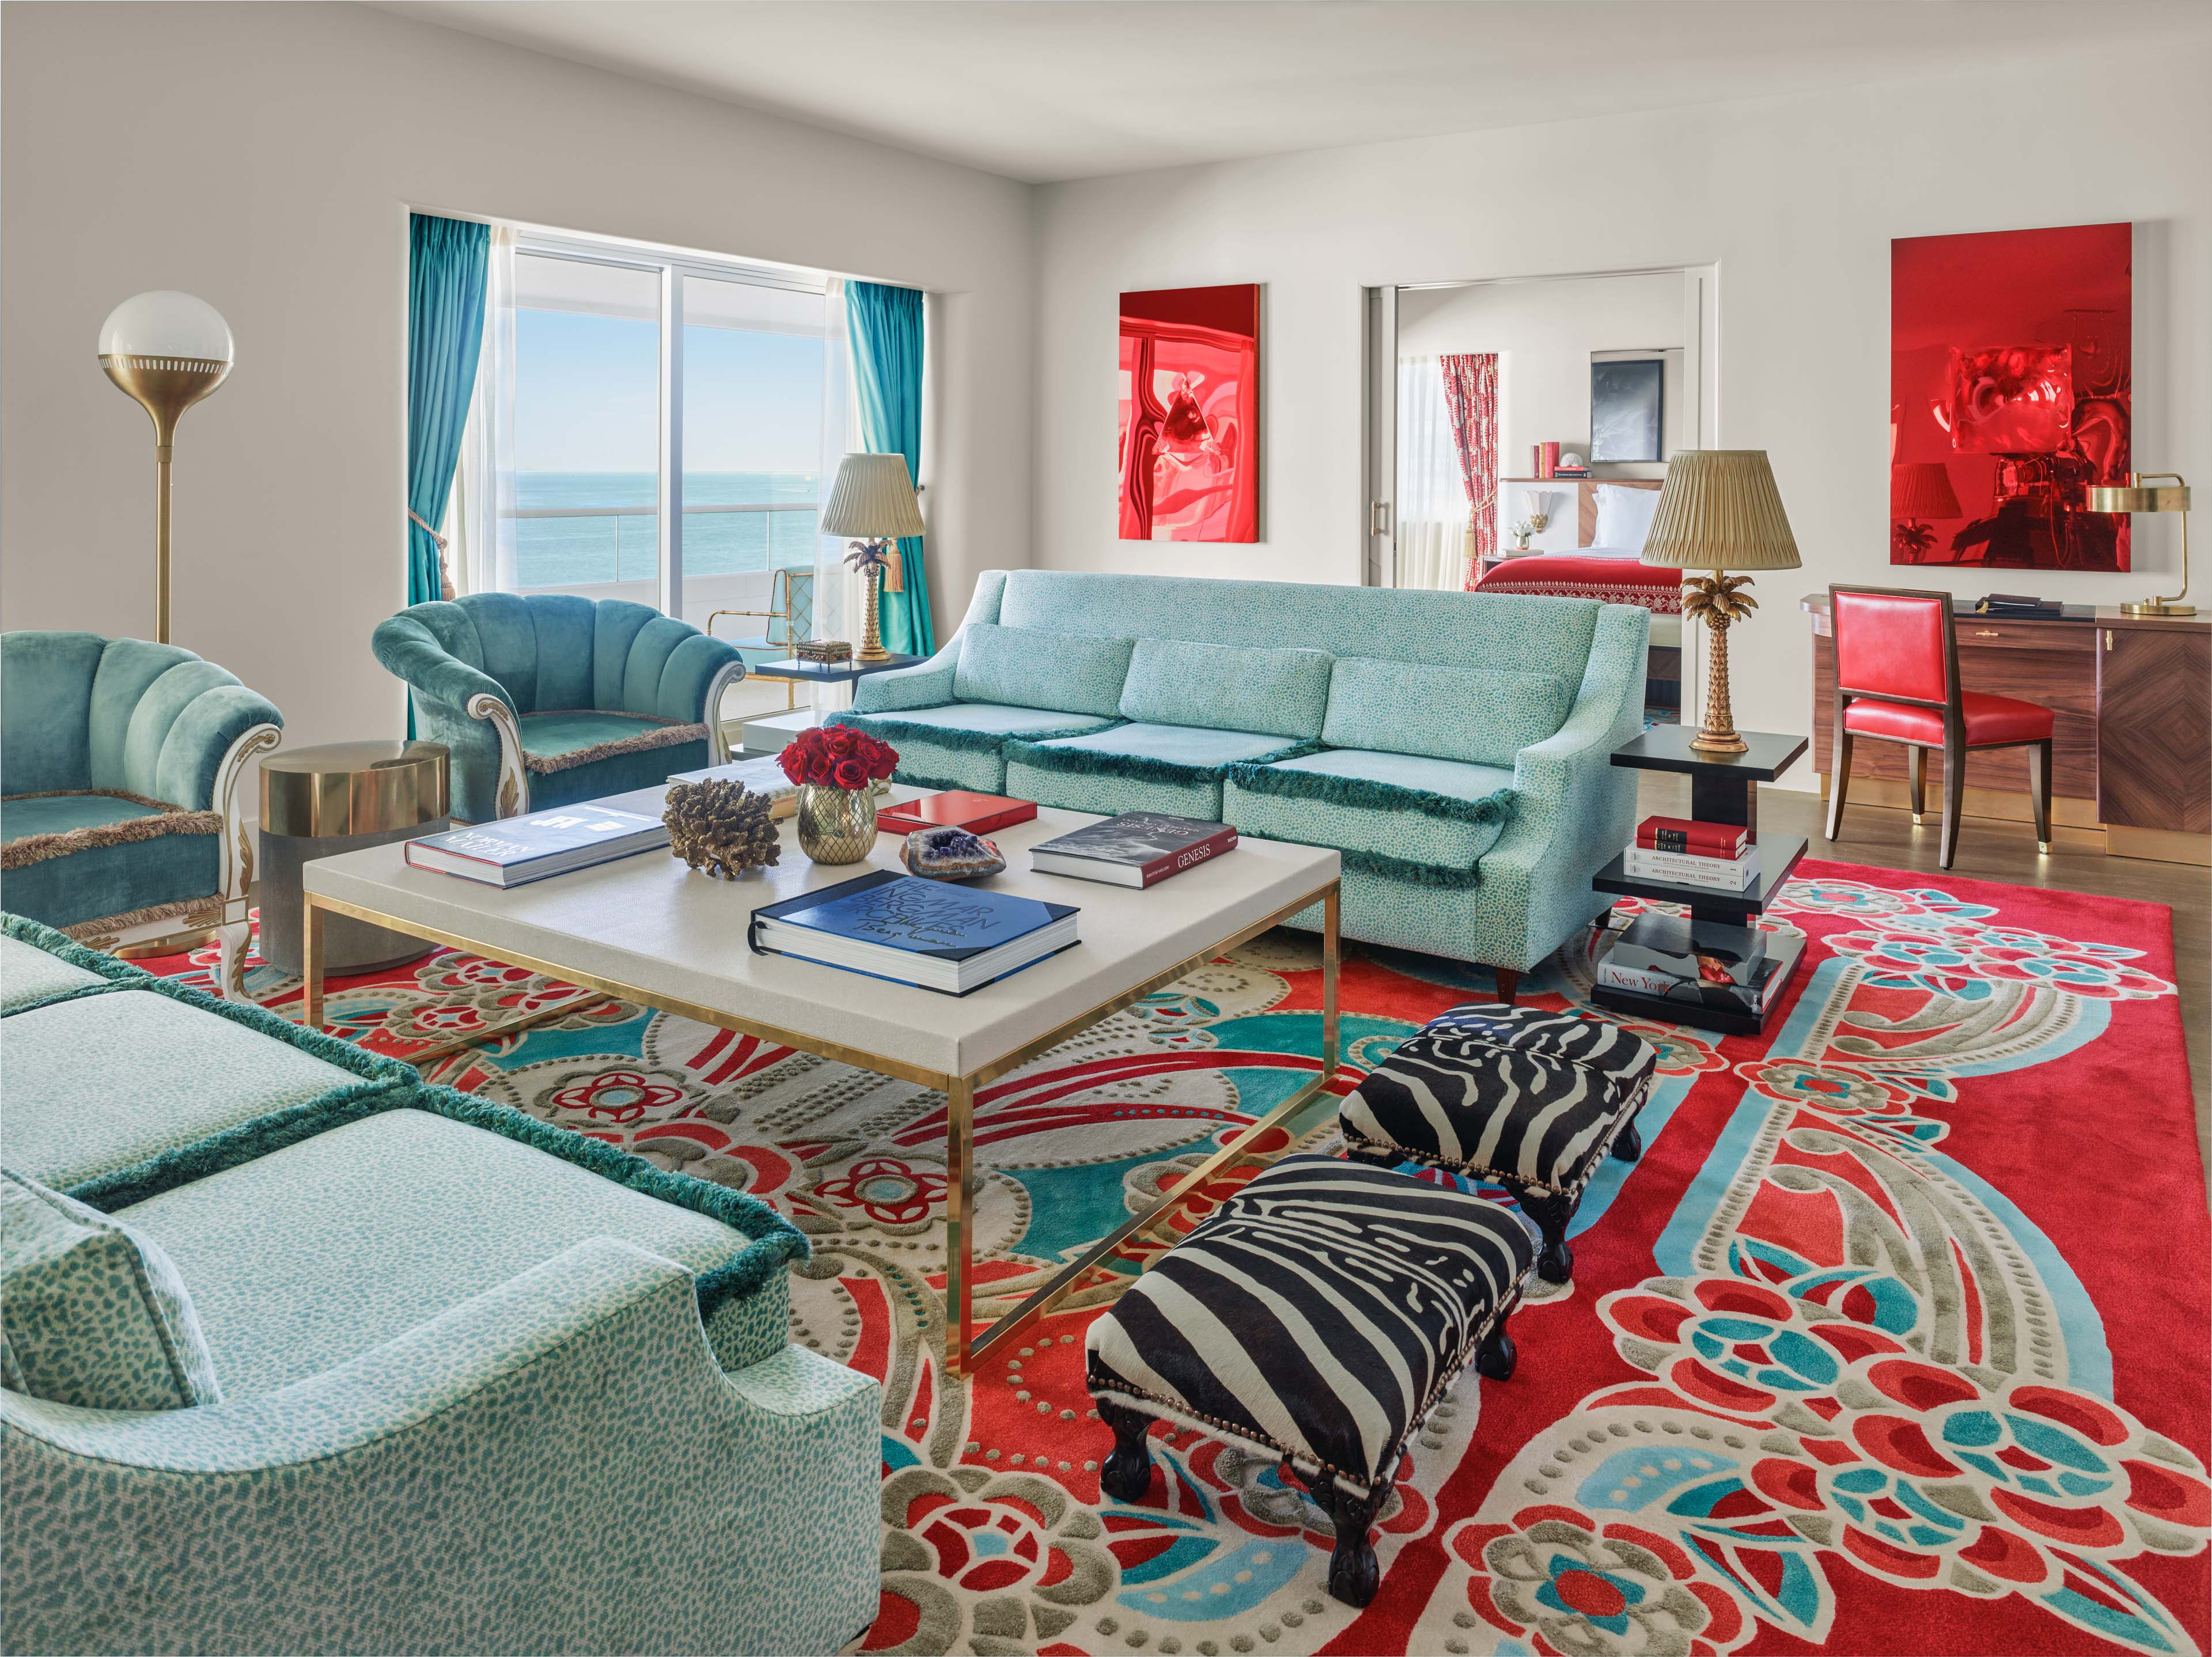 living room in saxony suite at the faena hotel